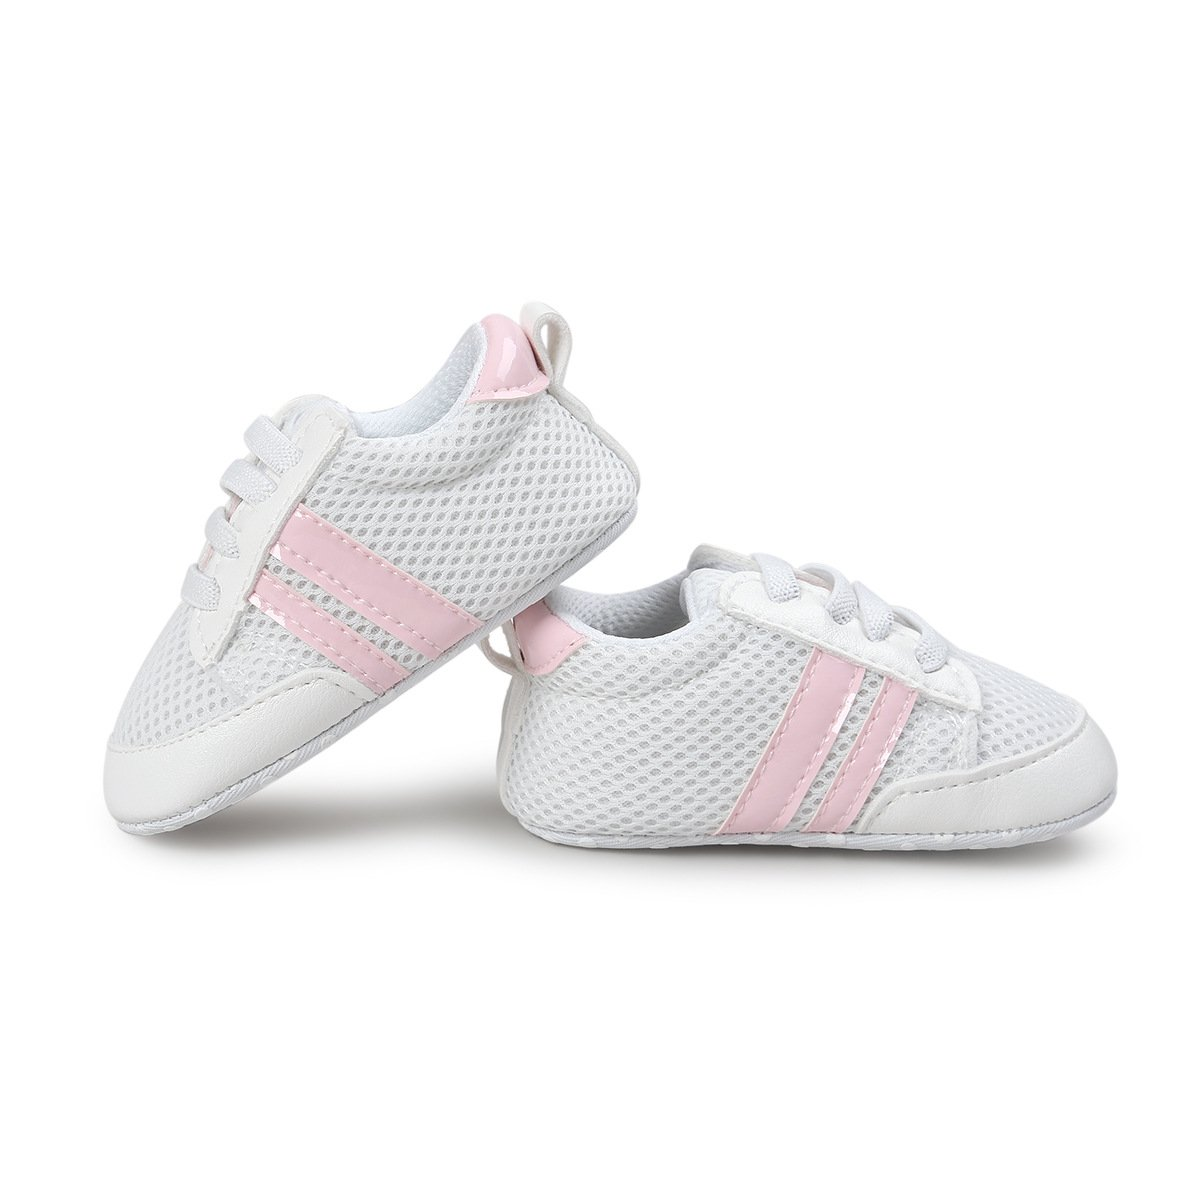 Save Beautiful Baby Shoes - Infant Boys Girls Summer Net Sneakers Crib Shoes (4.33inches(0-6months), style(A) pink)